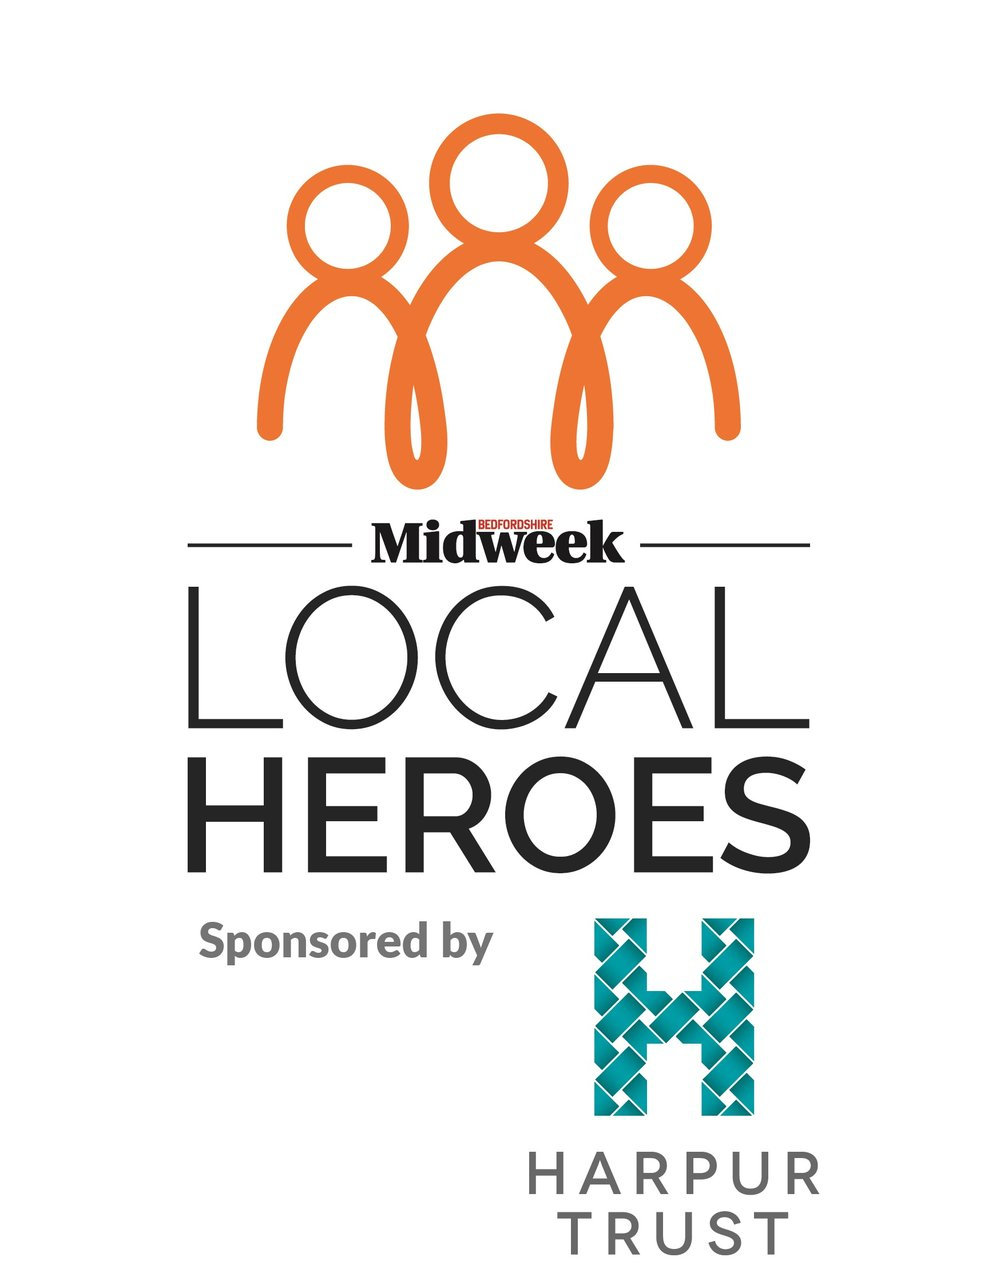 Local heroes old logo.jpg